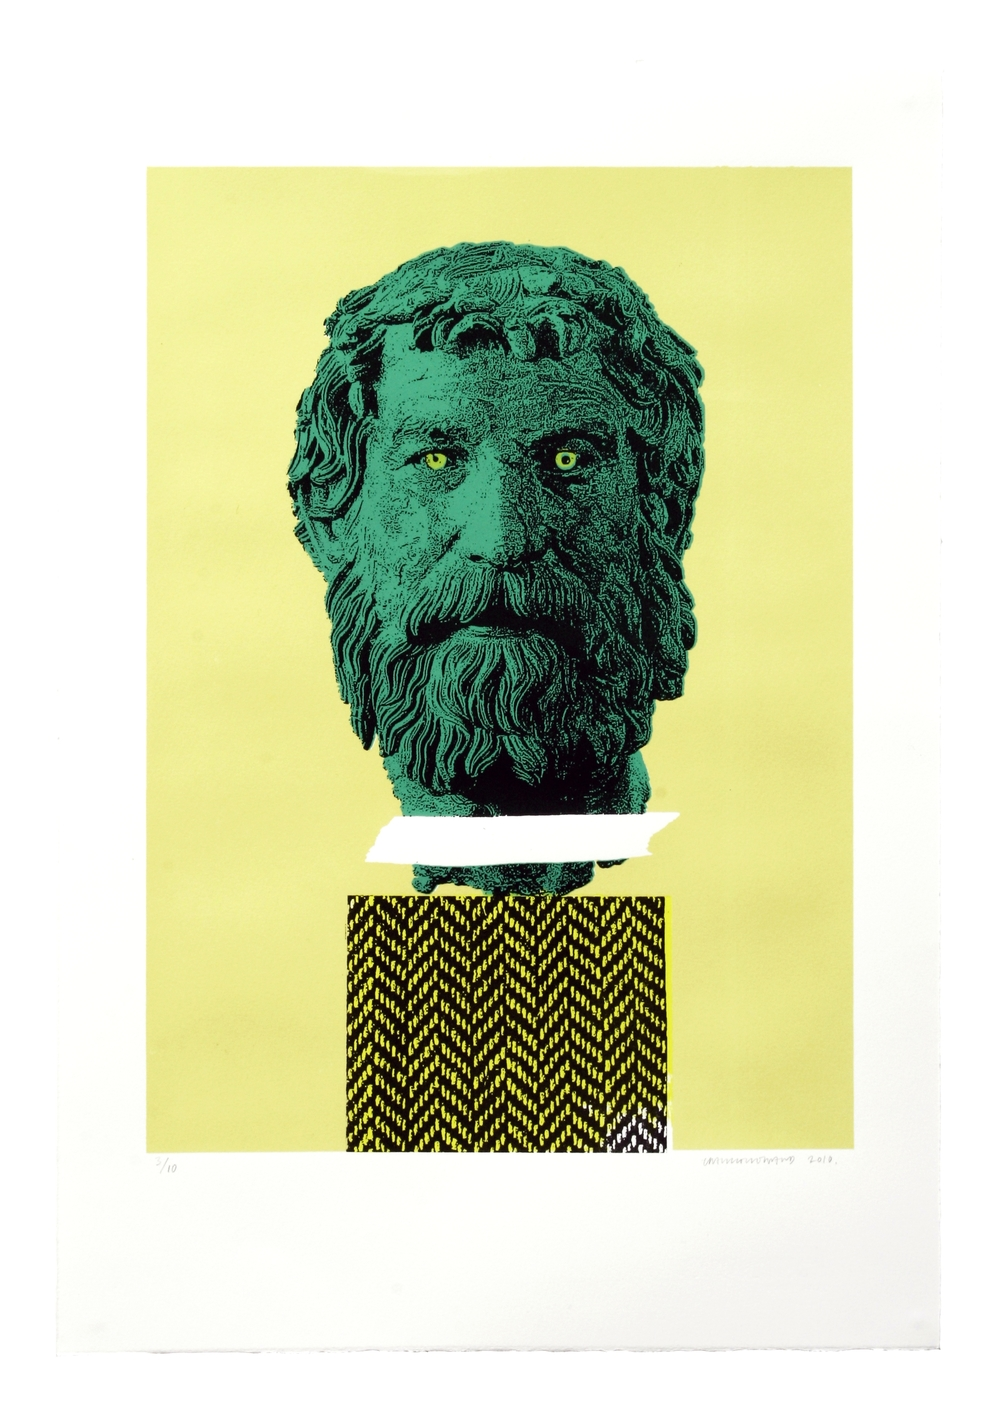 Untitled (Green Greek Head) (2010)